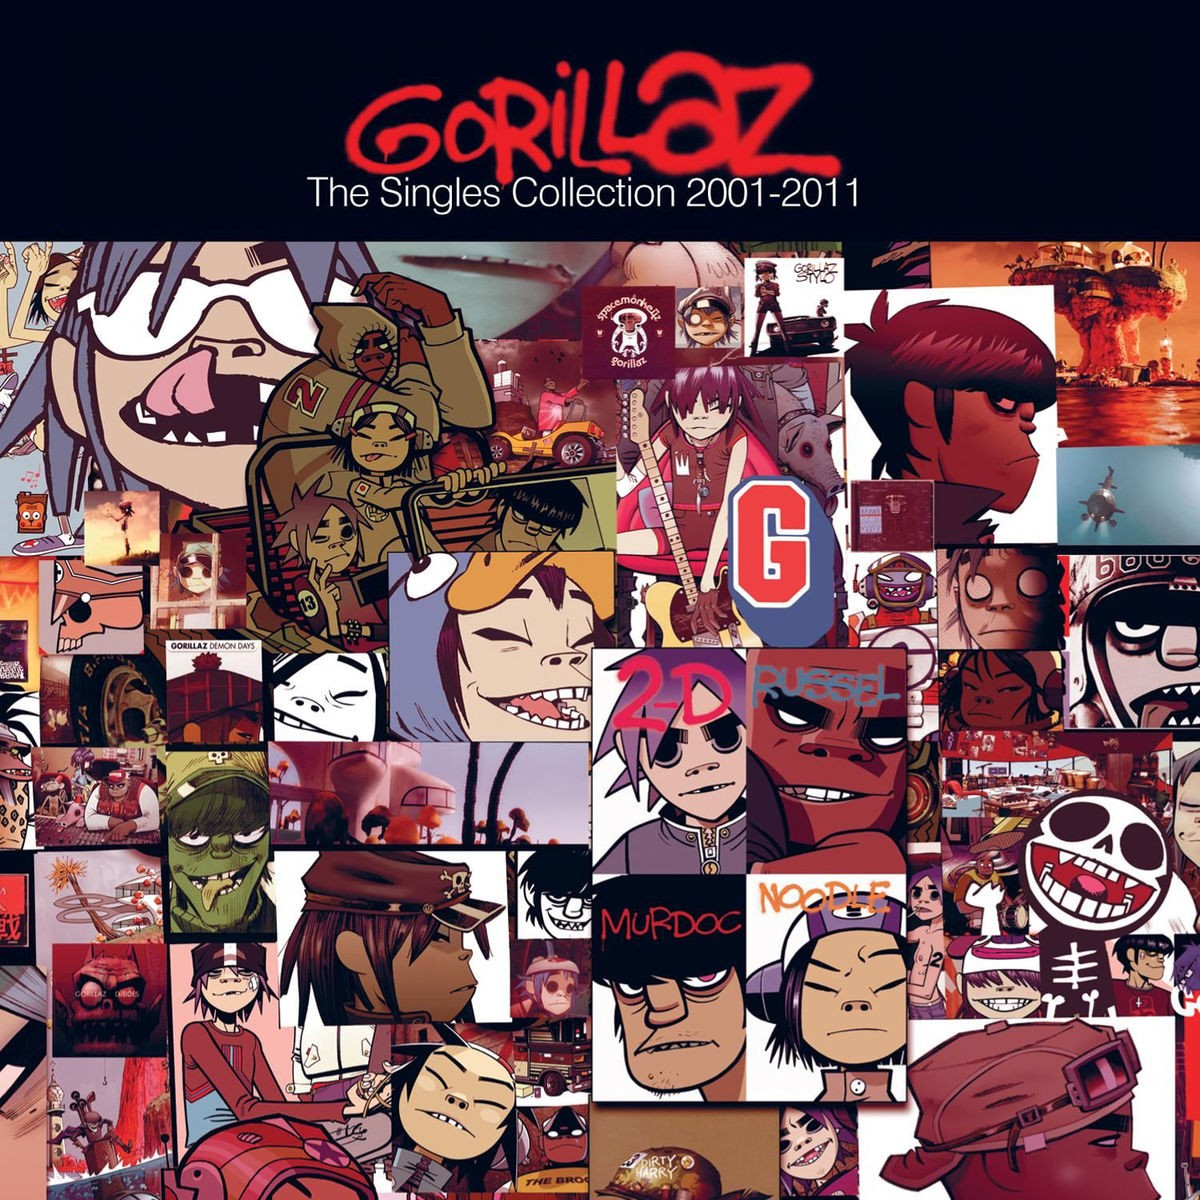 Gorillaz - The Singles Collection 2001-2011 CD - CDPCSJ 7262